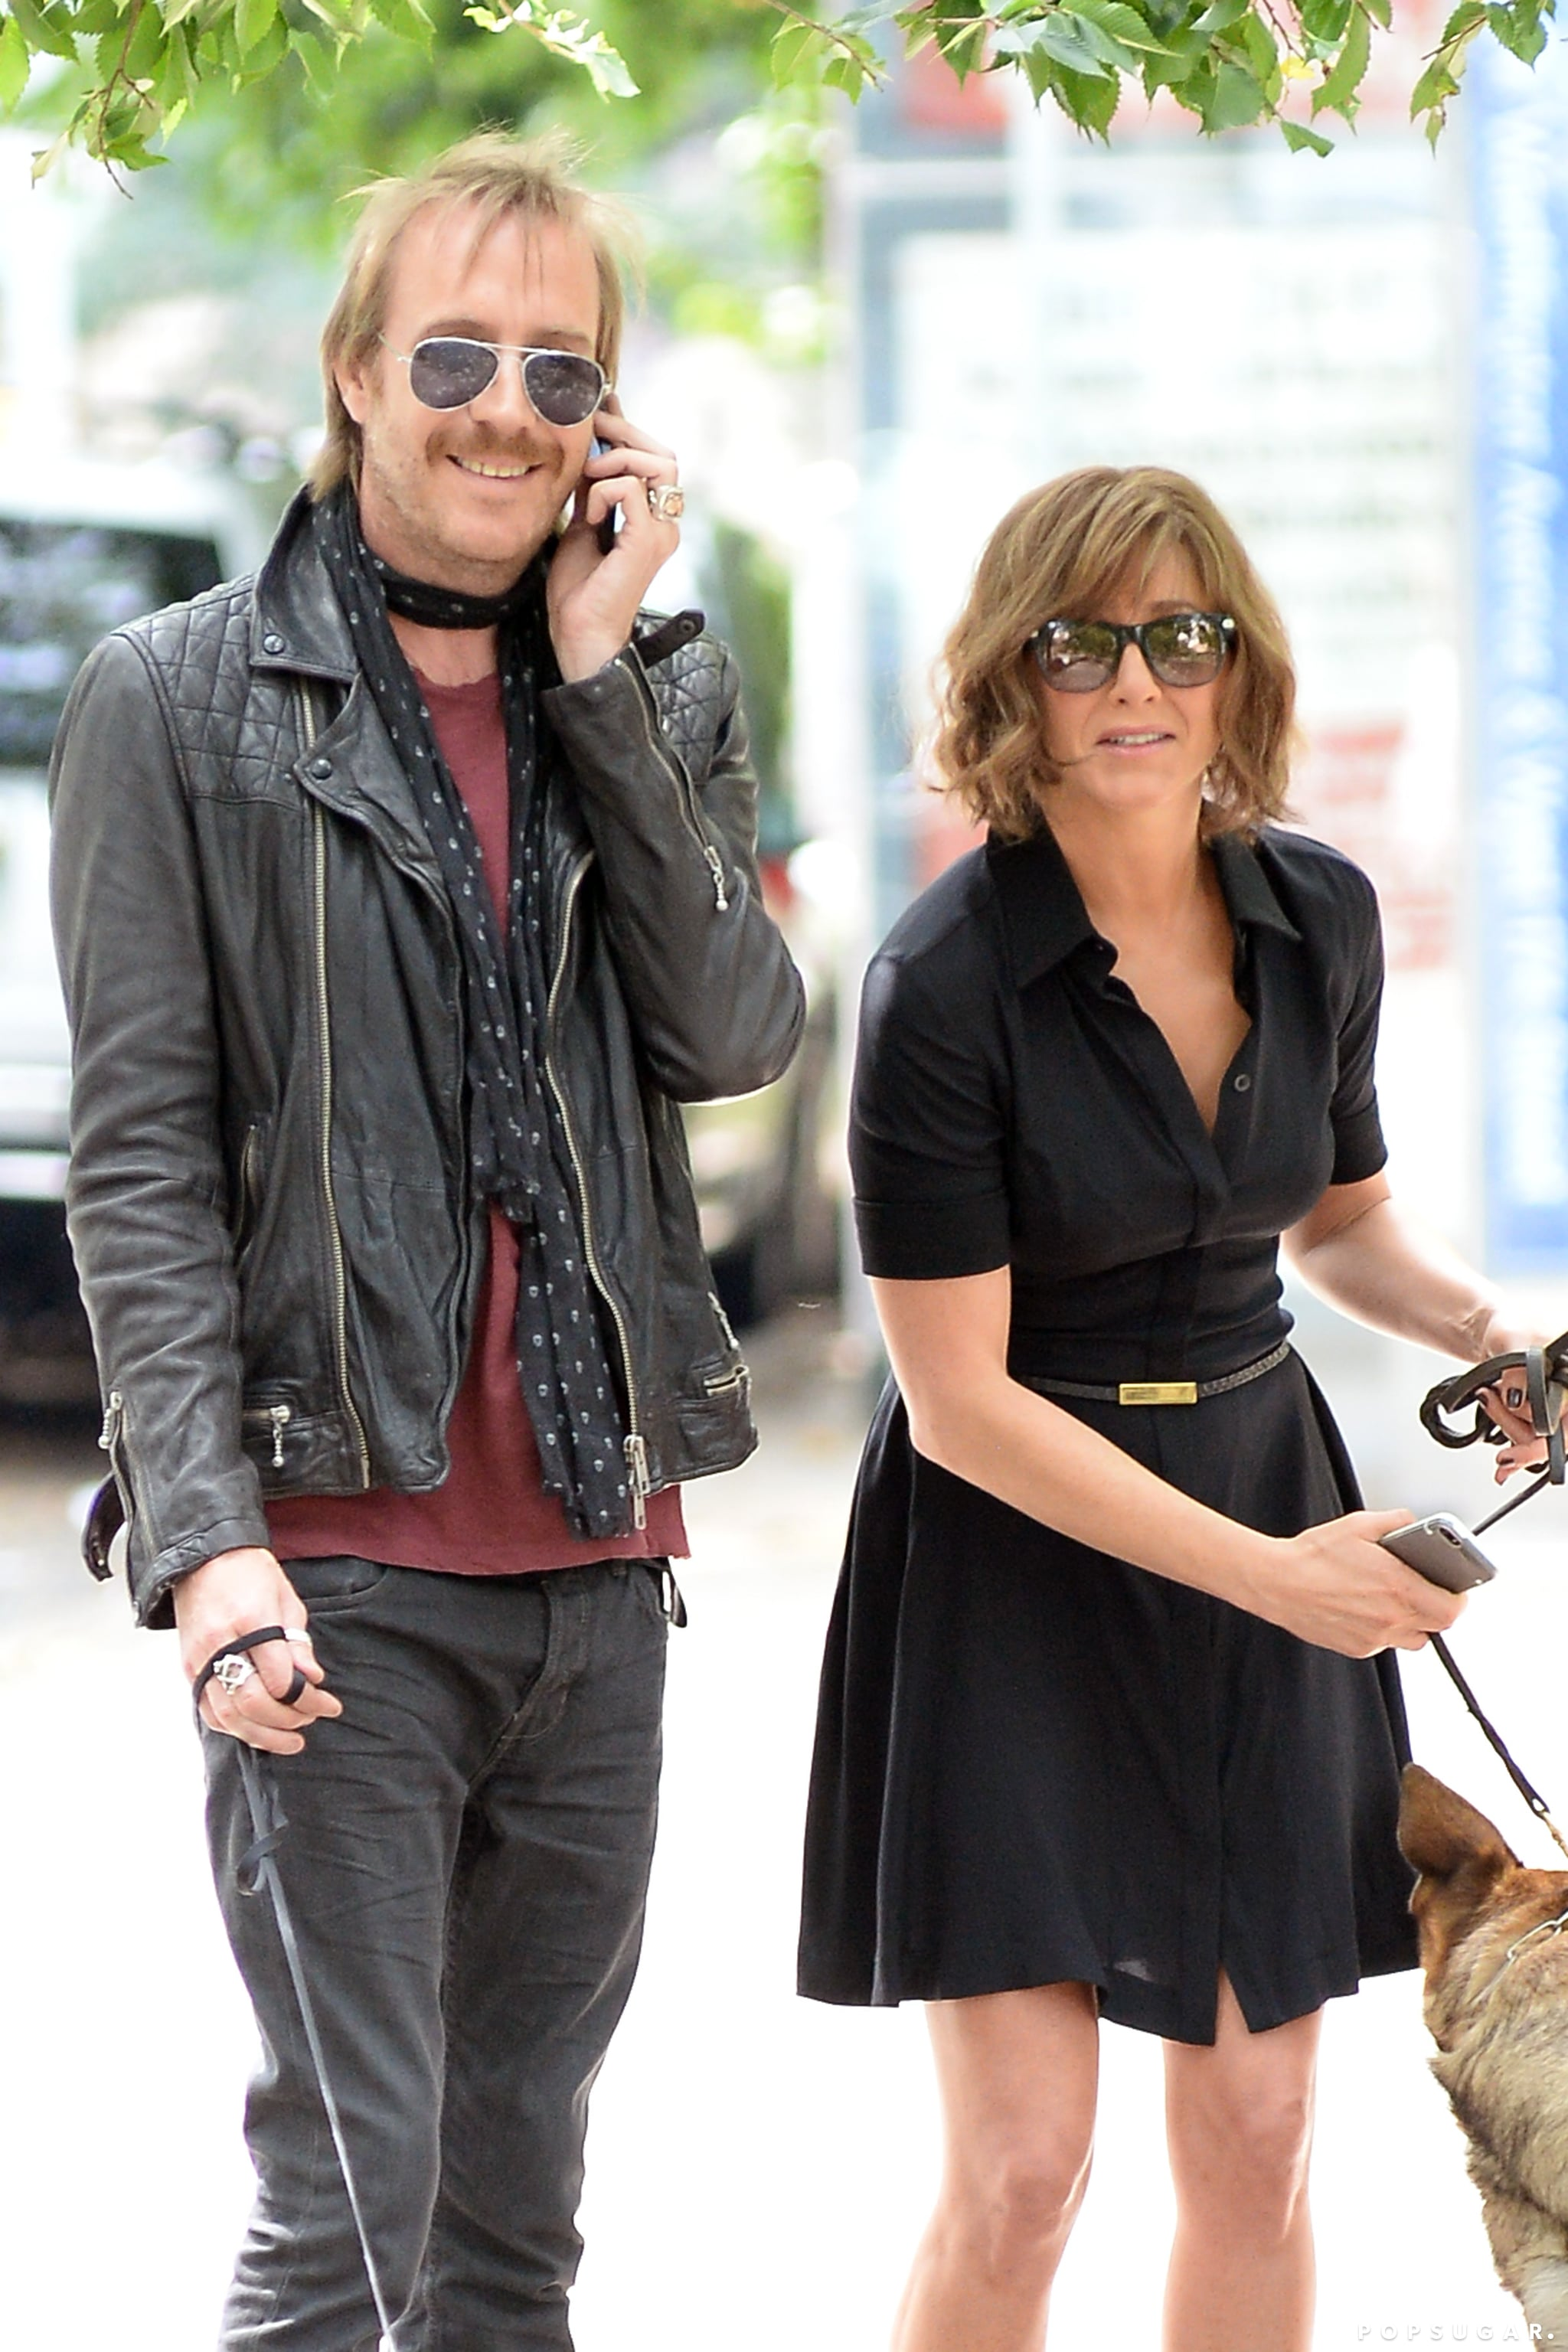 Jennifer Aniston filmed again in NYC on July 31 while wearing a black dress.